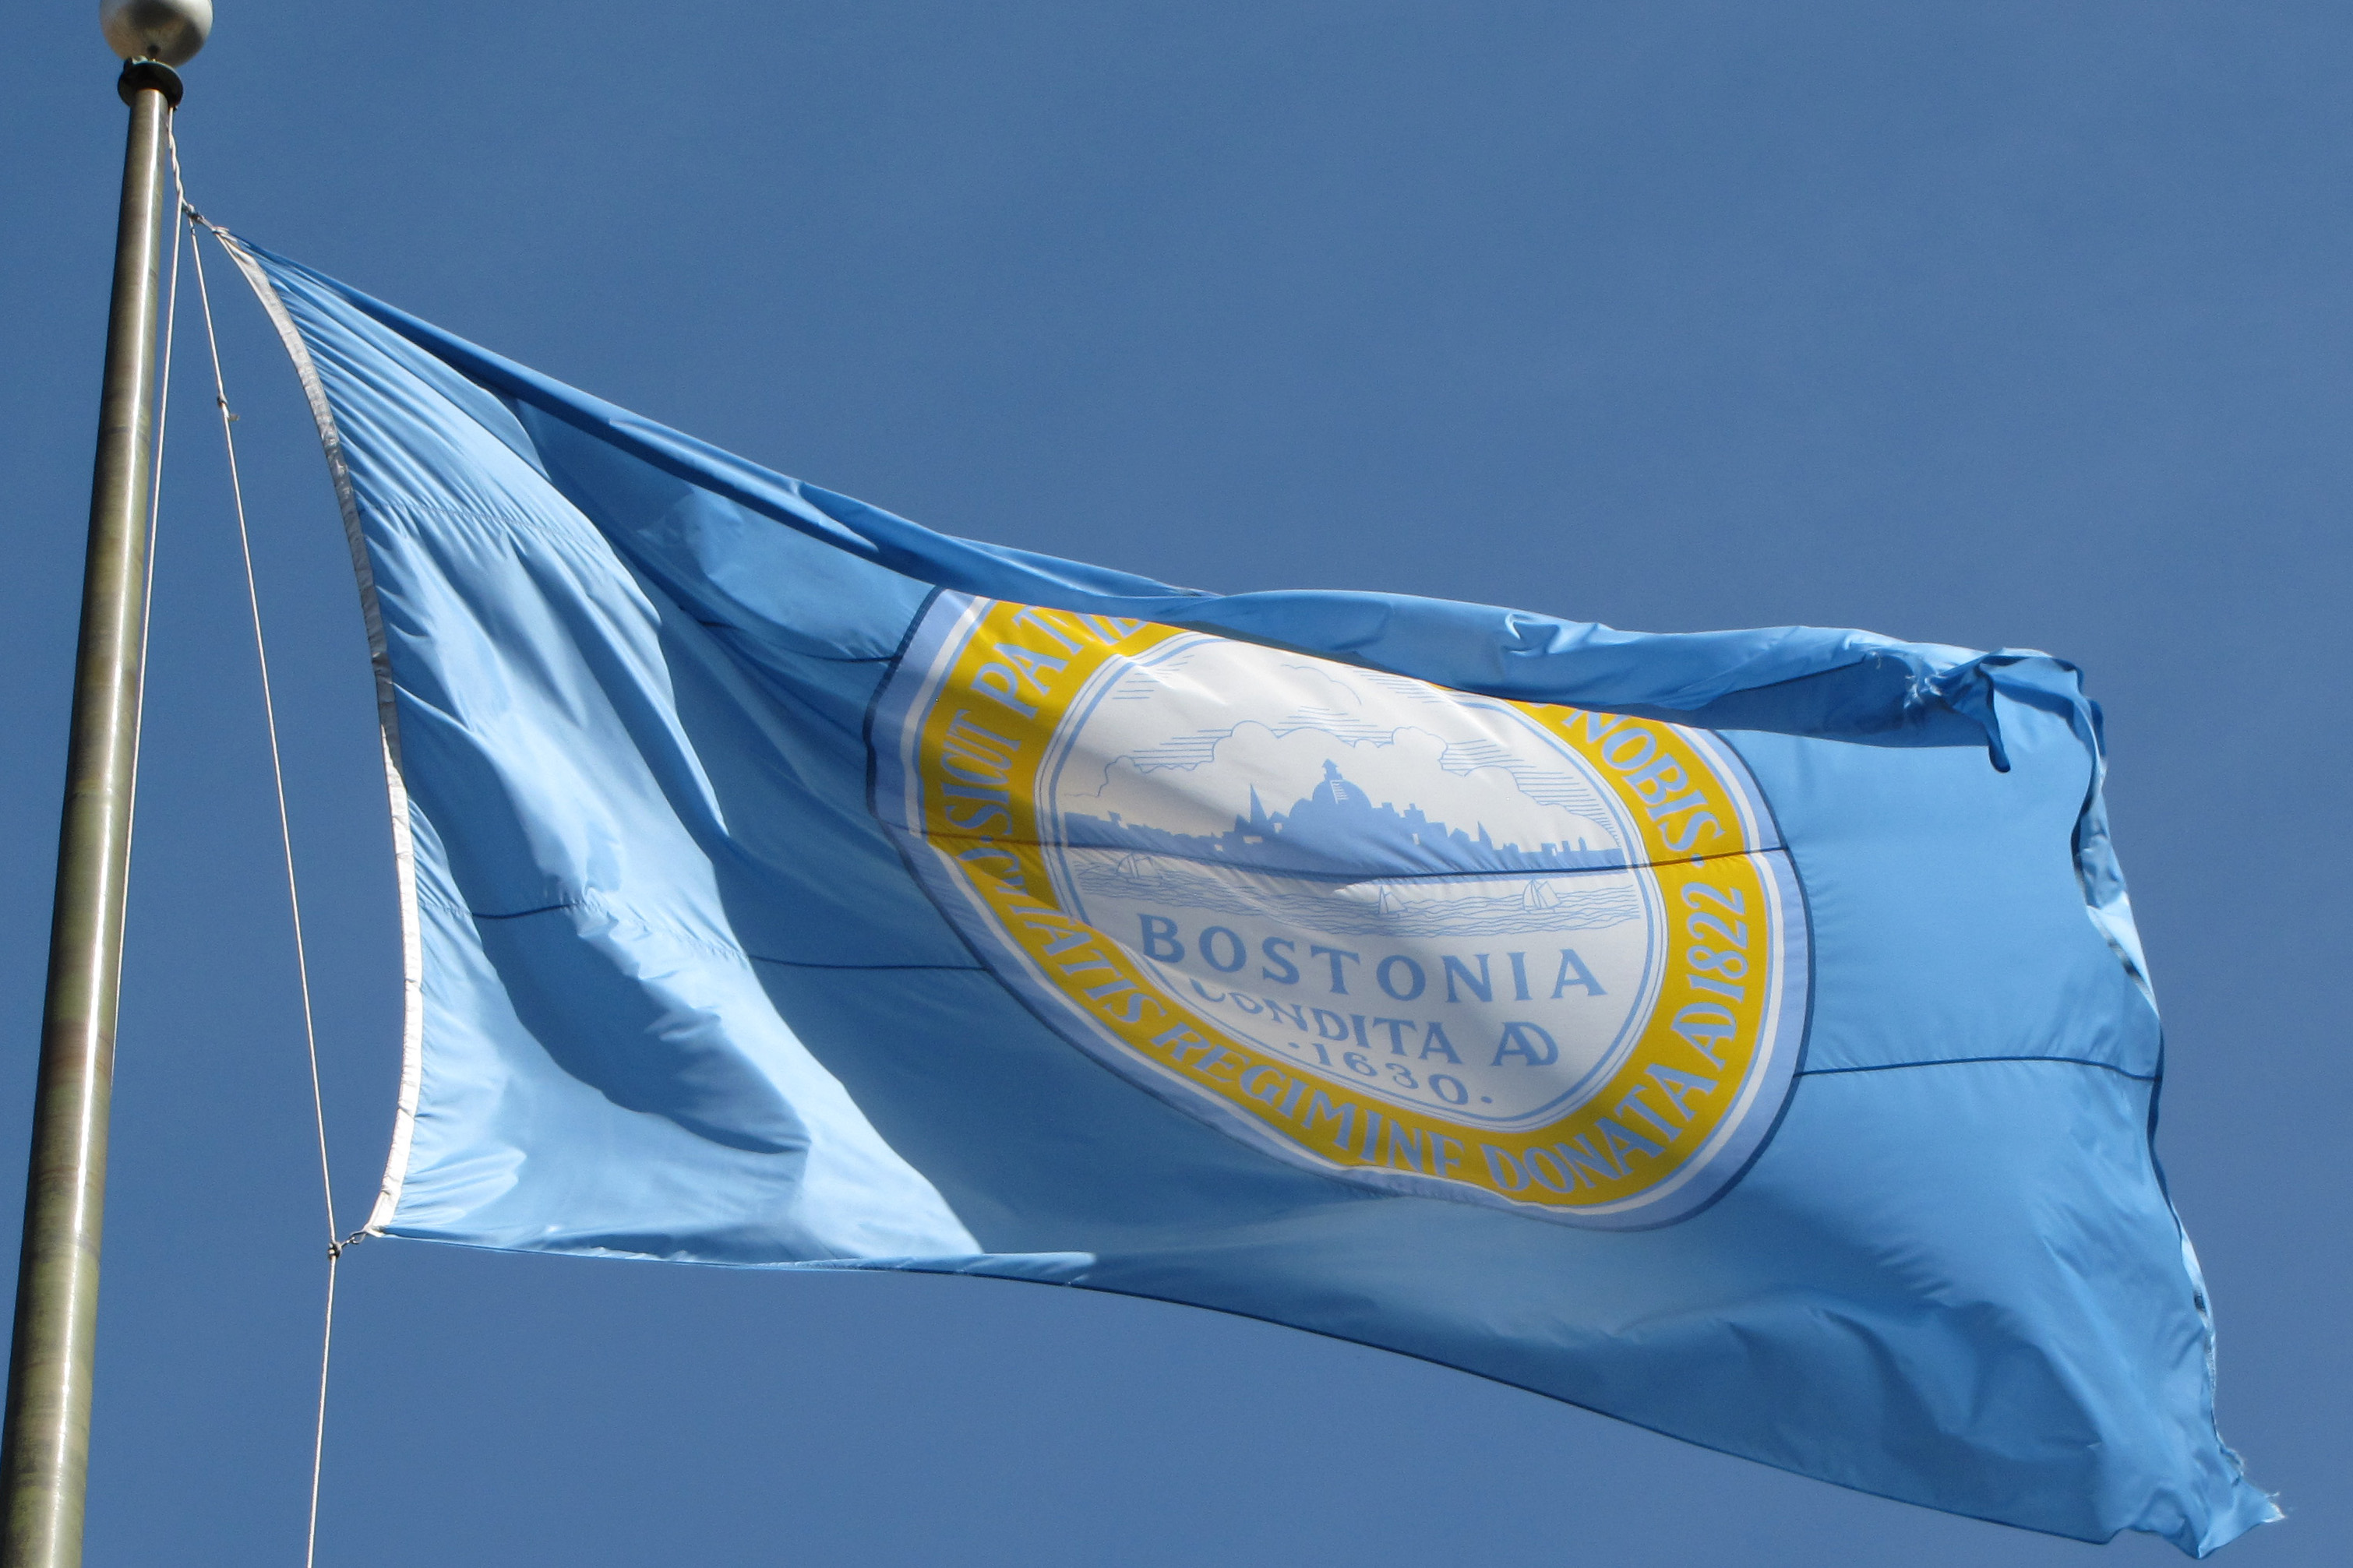 https://upload.wikimedia.org/wikipedia/commons/6/6e/Flag_of_Boston.jpg